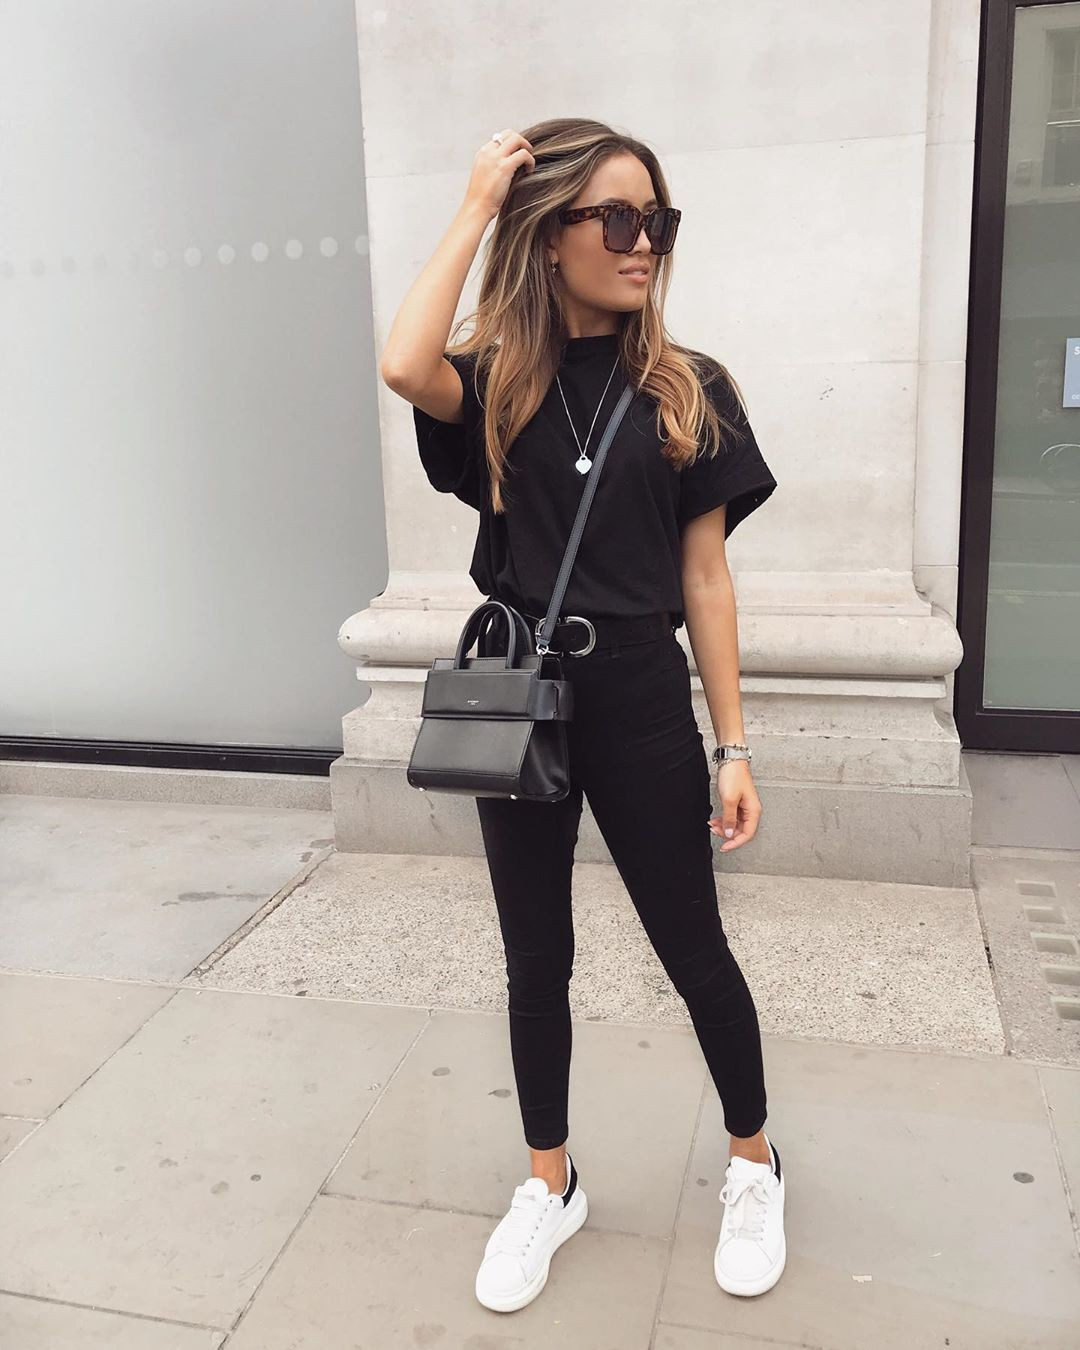 Colour dress casual 2020 outfit ideas hip hop fashion, business casual